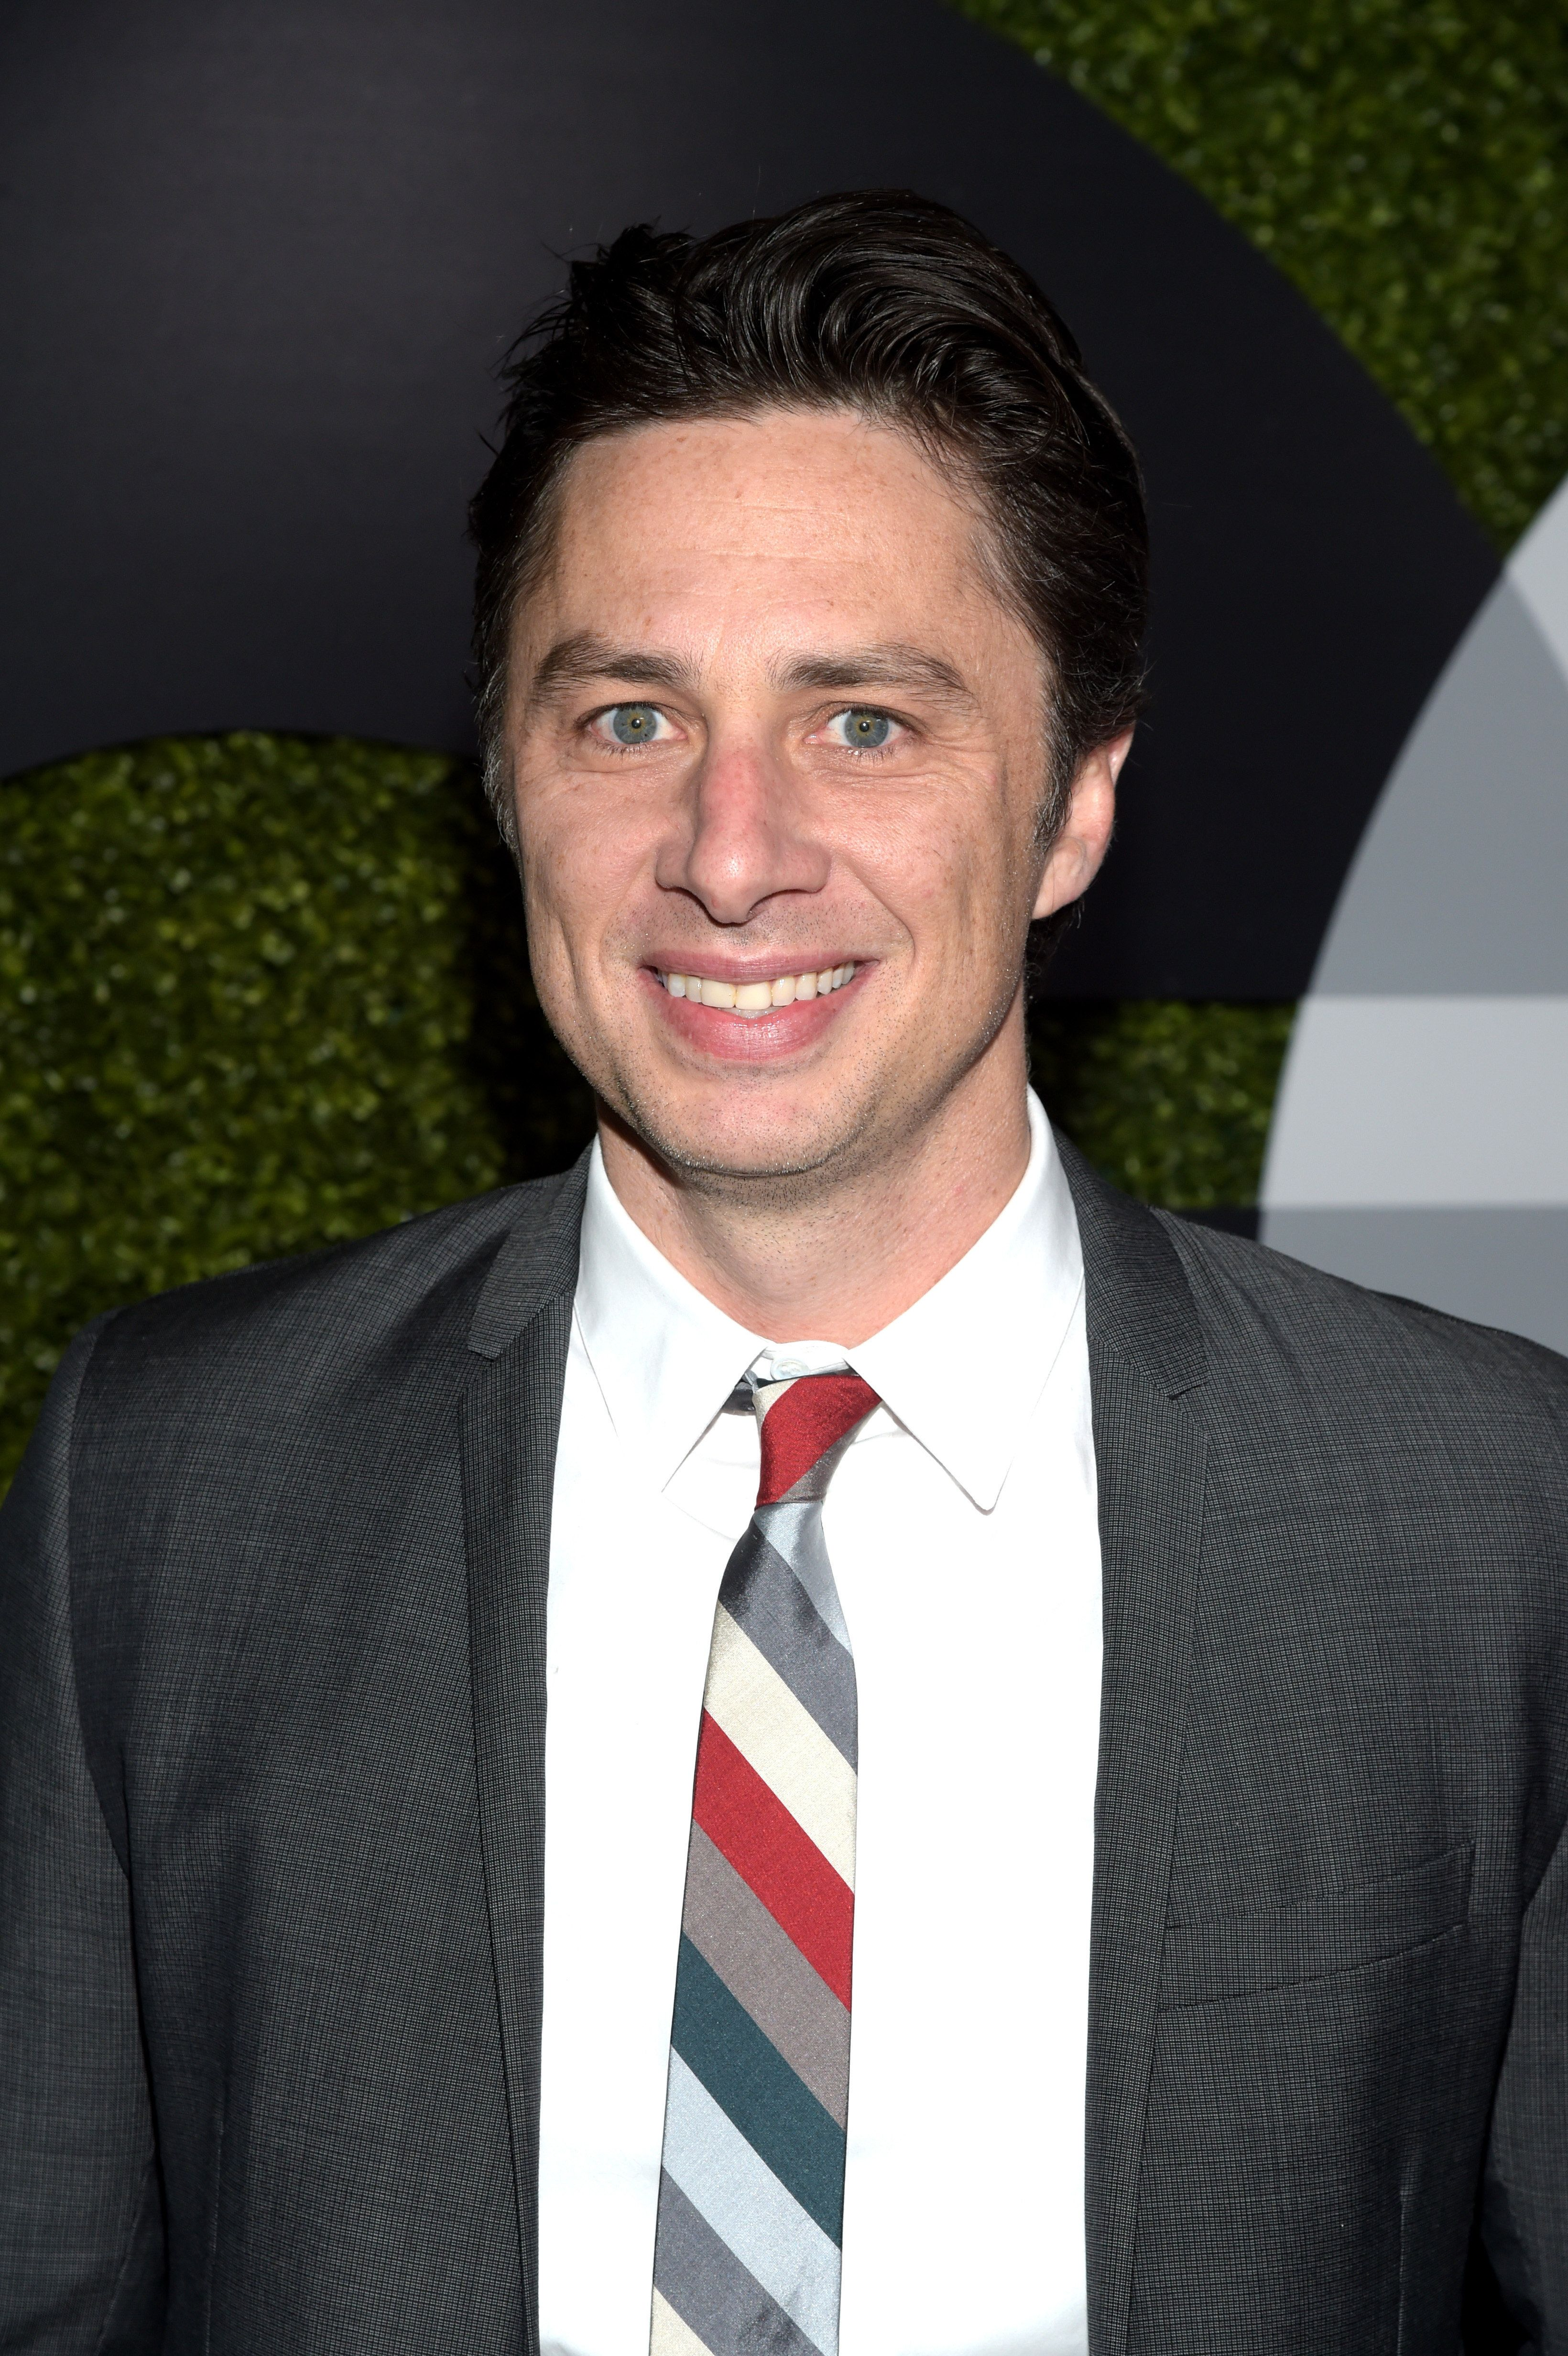 LOS ANGELES, CA - DECEMBER 03:  Actor Zach Braff  attends the GQ 20th Anniversary Men Of The Year Party at Chateau Marmont on December 3, 2015 in Los Angeles, California.  (Photo by Jason Kempin/Getty Images)